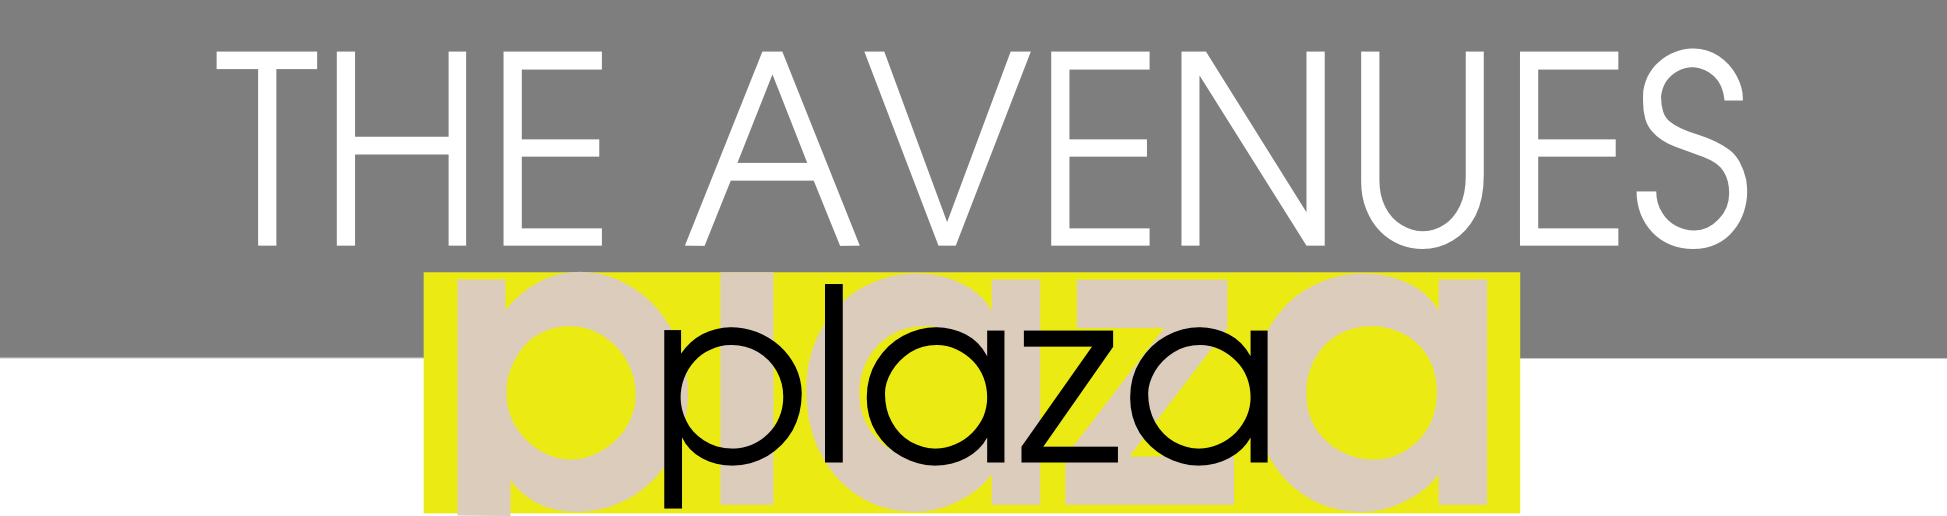 The Avenues Logo.png